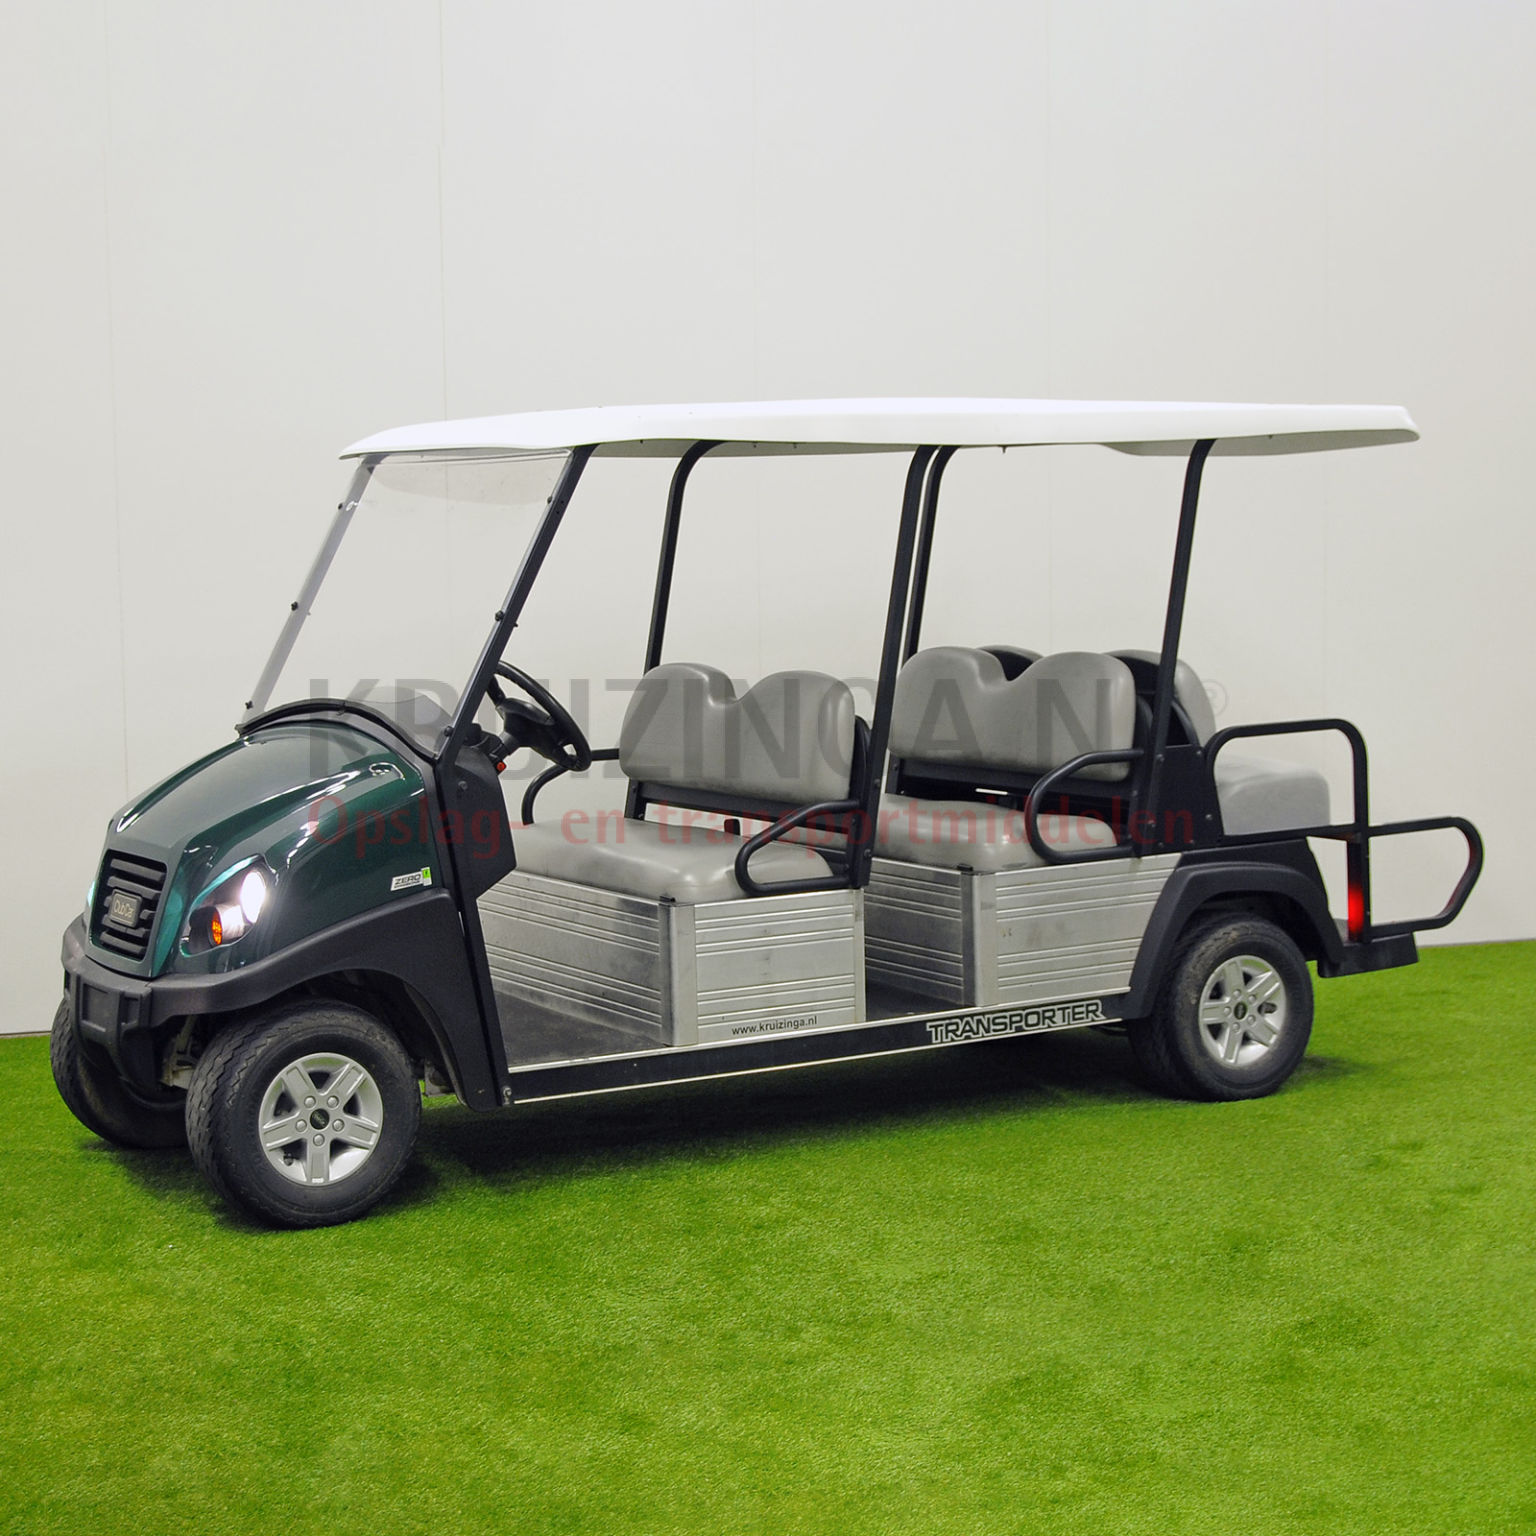 golfwagen club car transporter f r 6 personen elektrisch. Black Bedroom Furniture Sets. Home Design Ideas